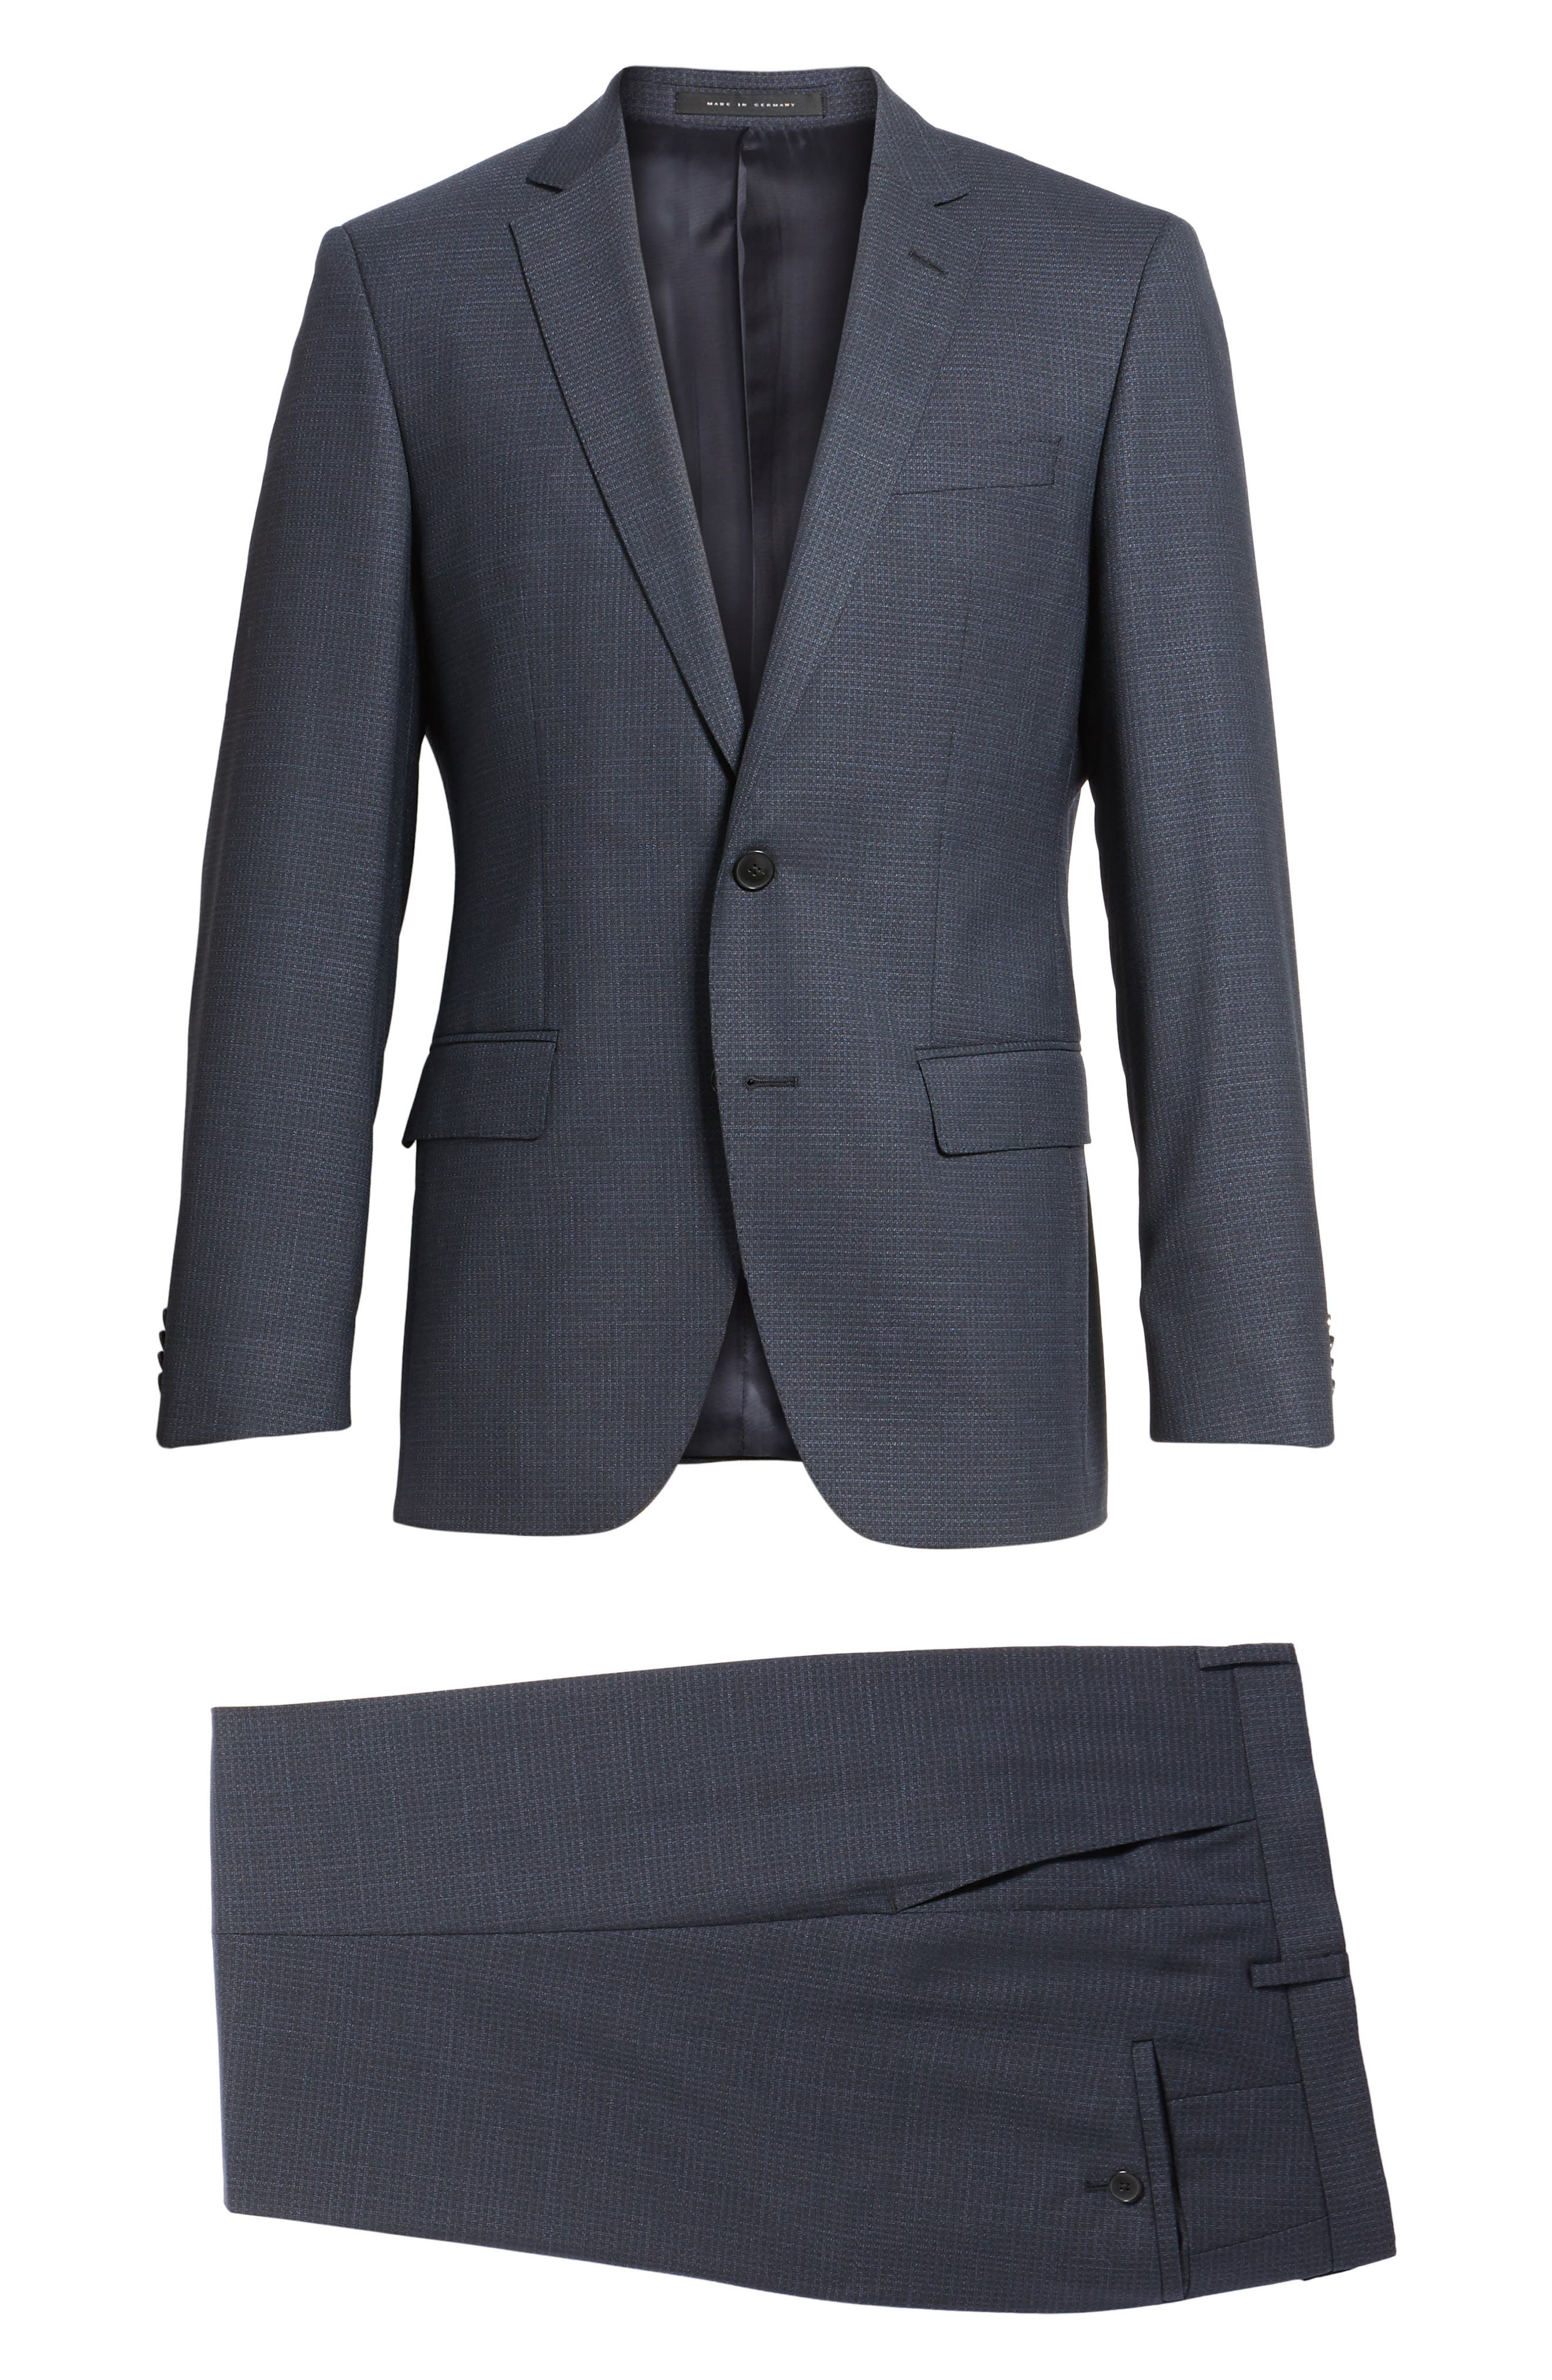 Huge/Genius Trim Fit Check Wool Suit,                             Alternate thumbnail 8, color,                             409